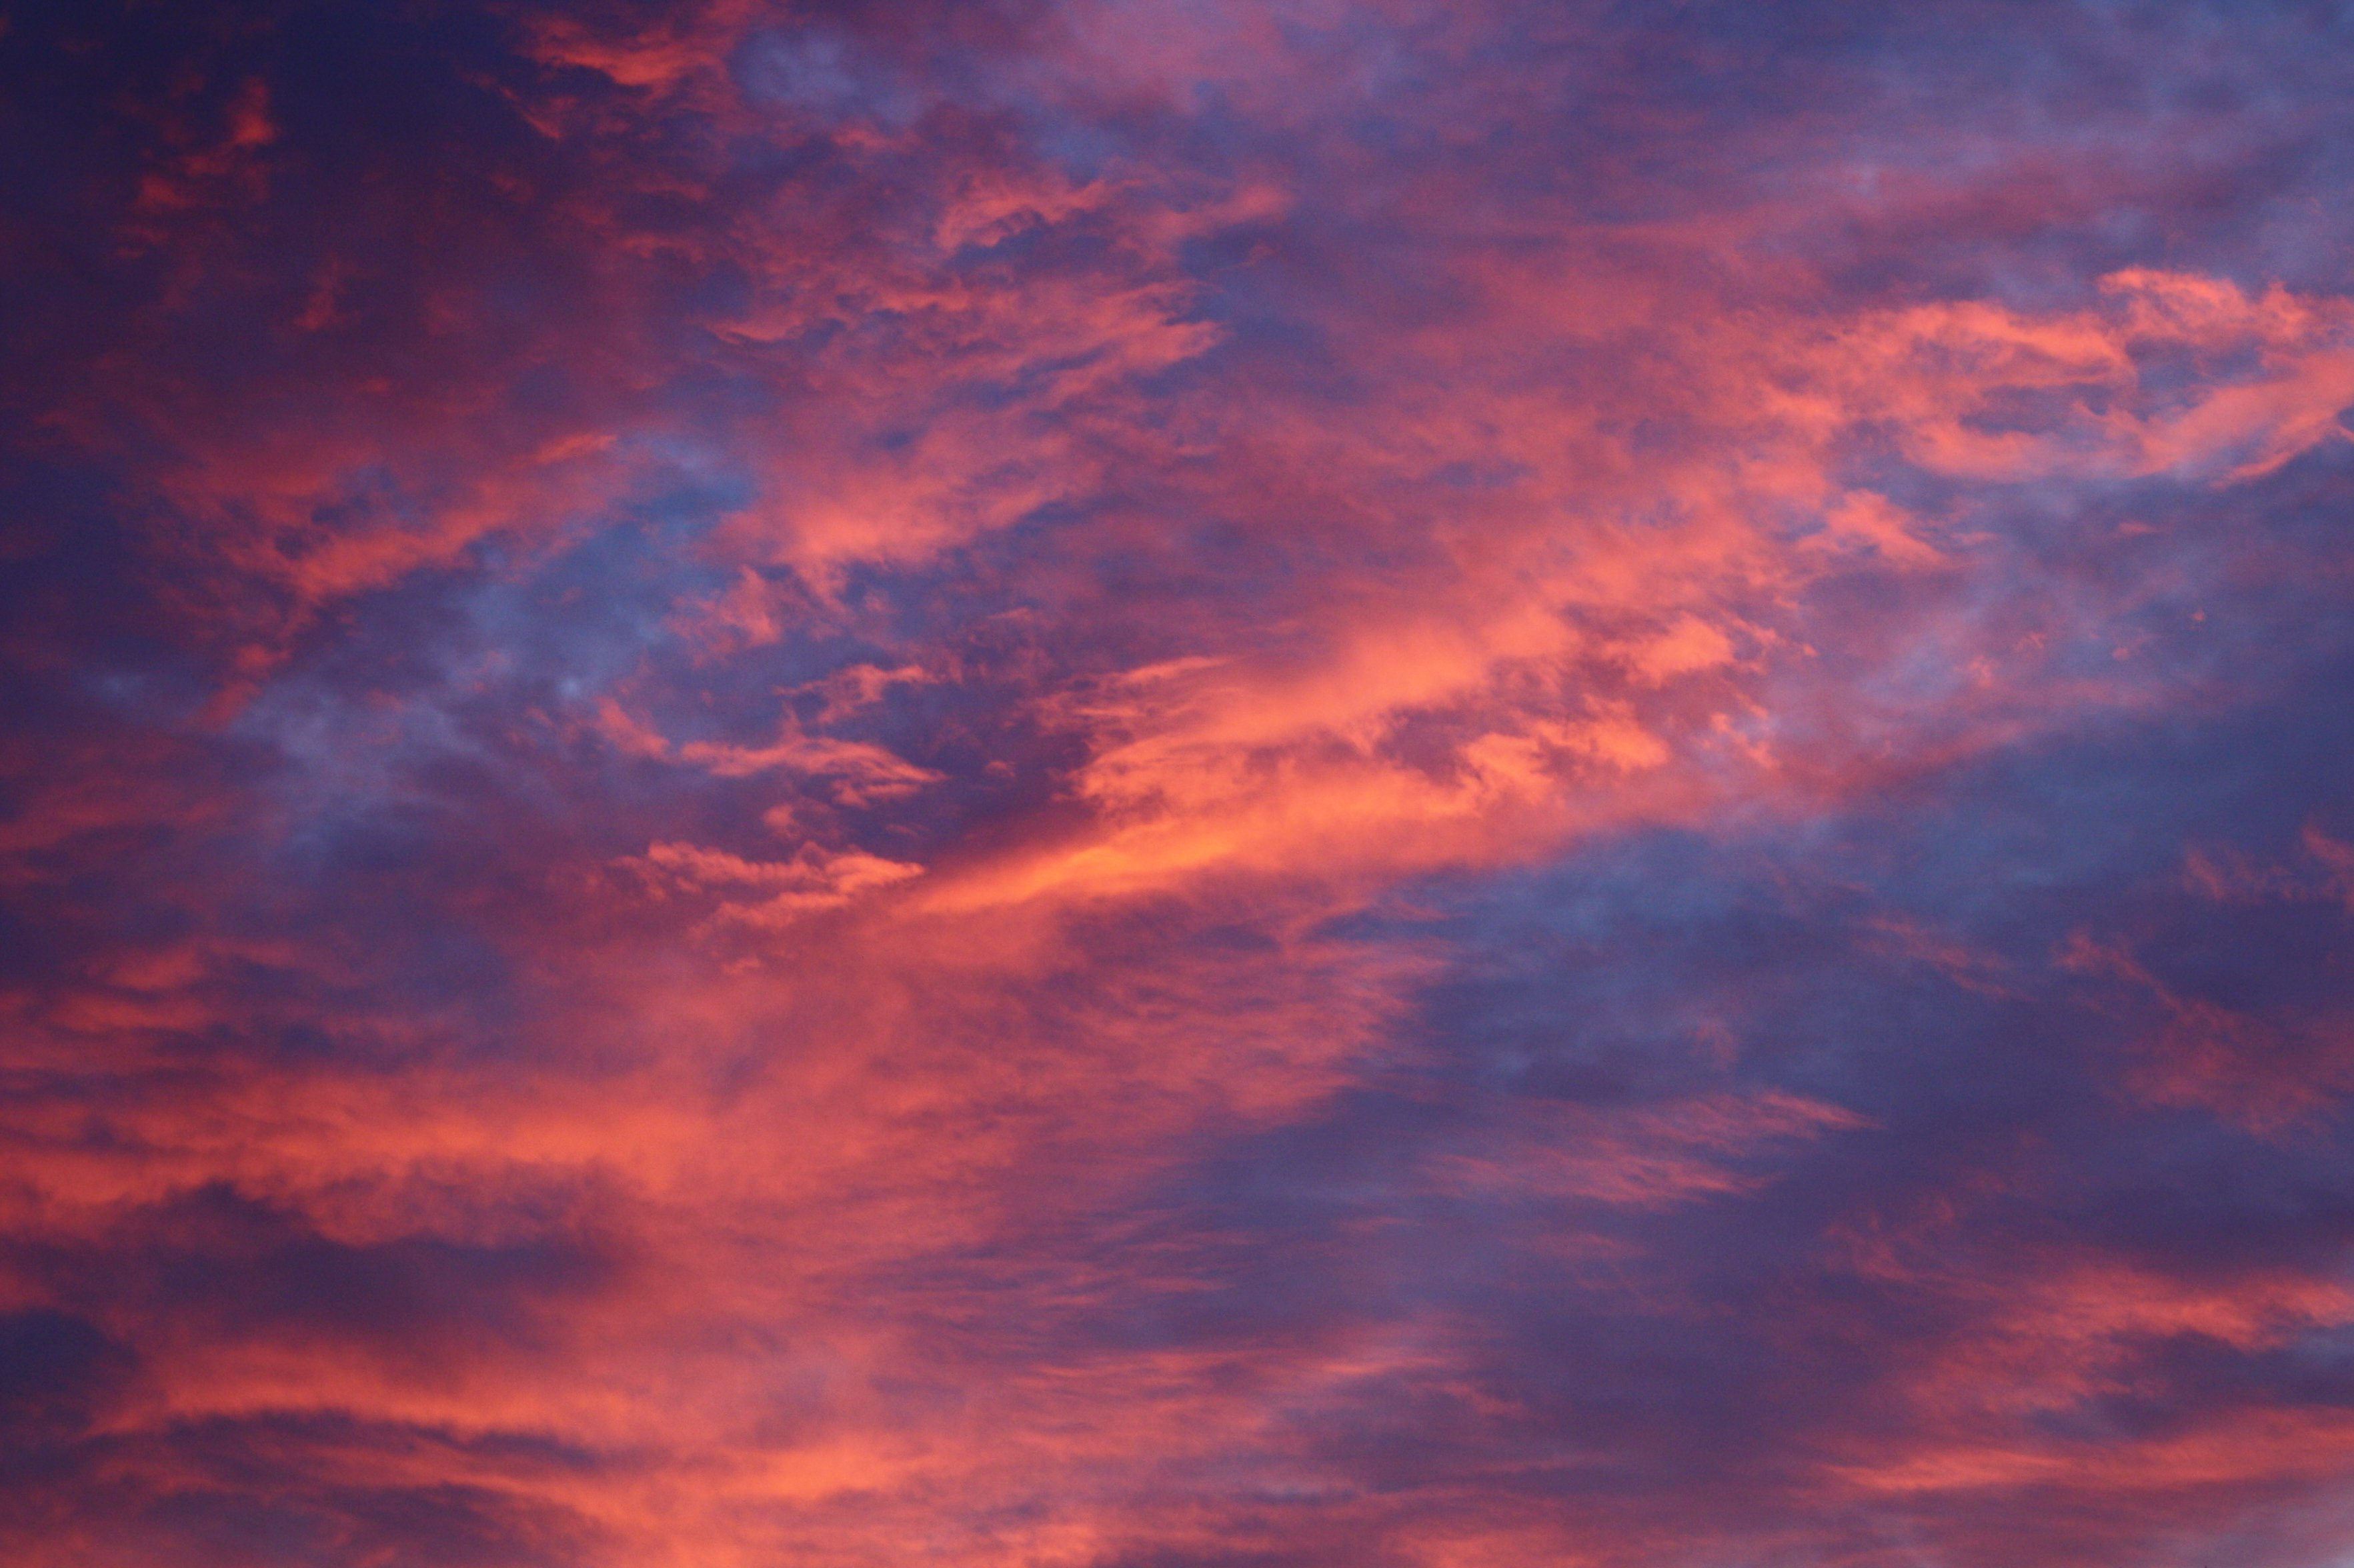 Red Clouds at Sunrise Free High Resolution Photo Dimensions: 3700